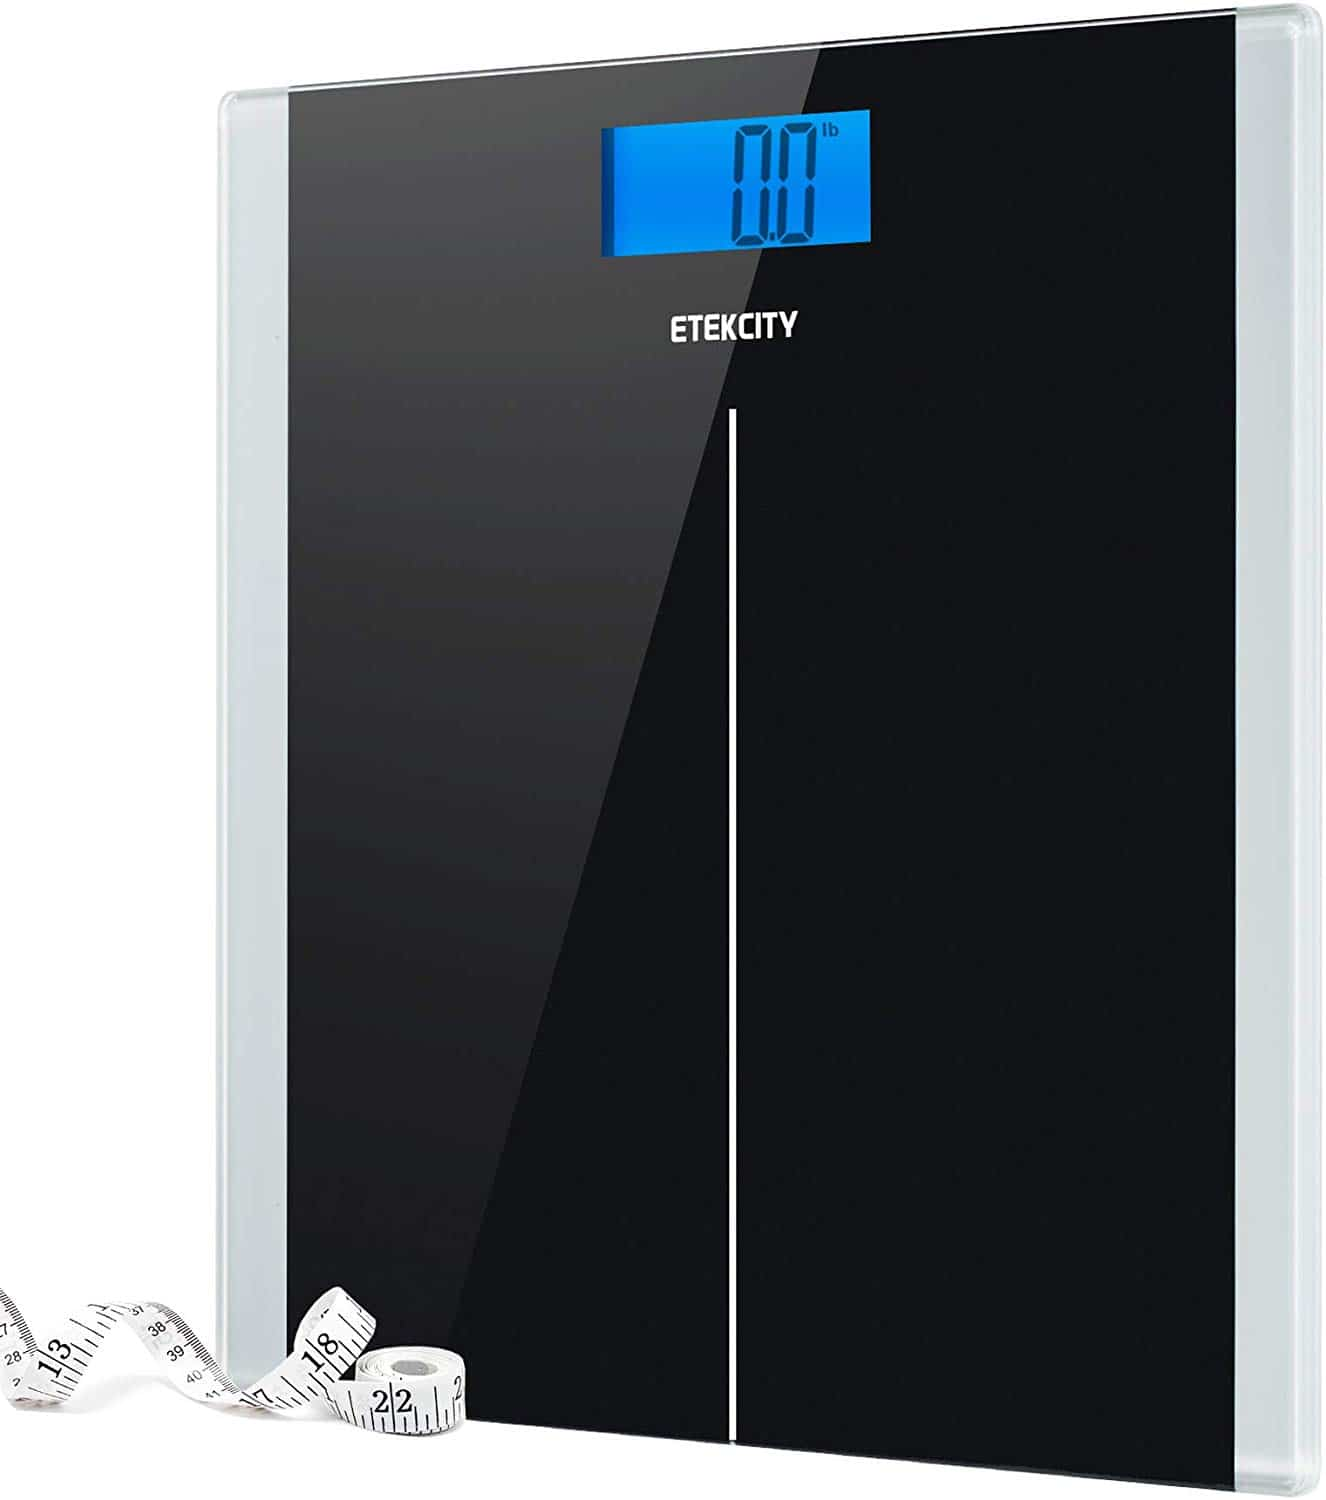 Etekcity Digital Scale